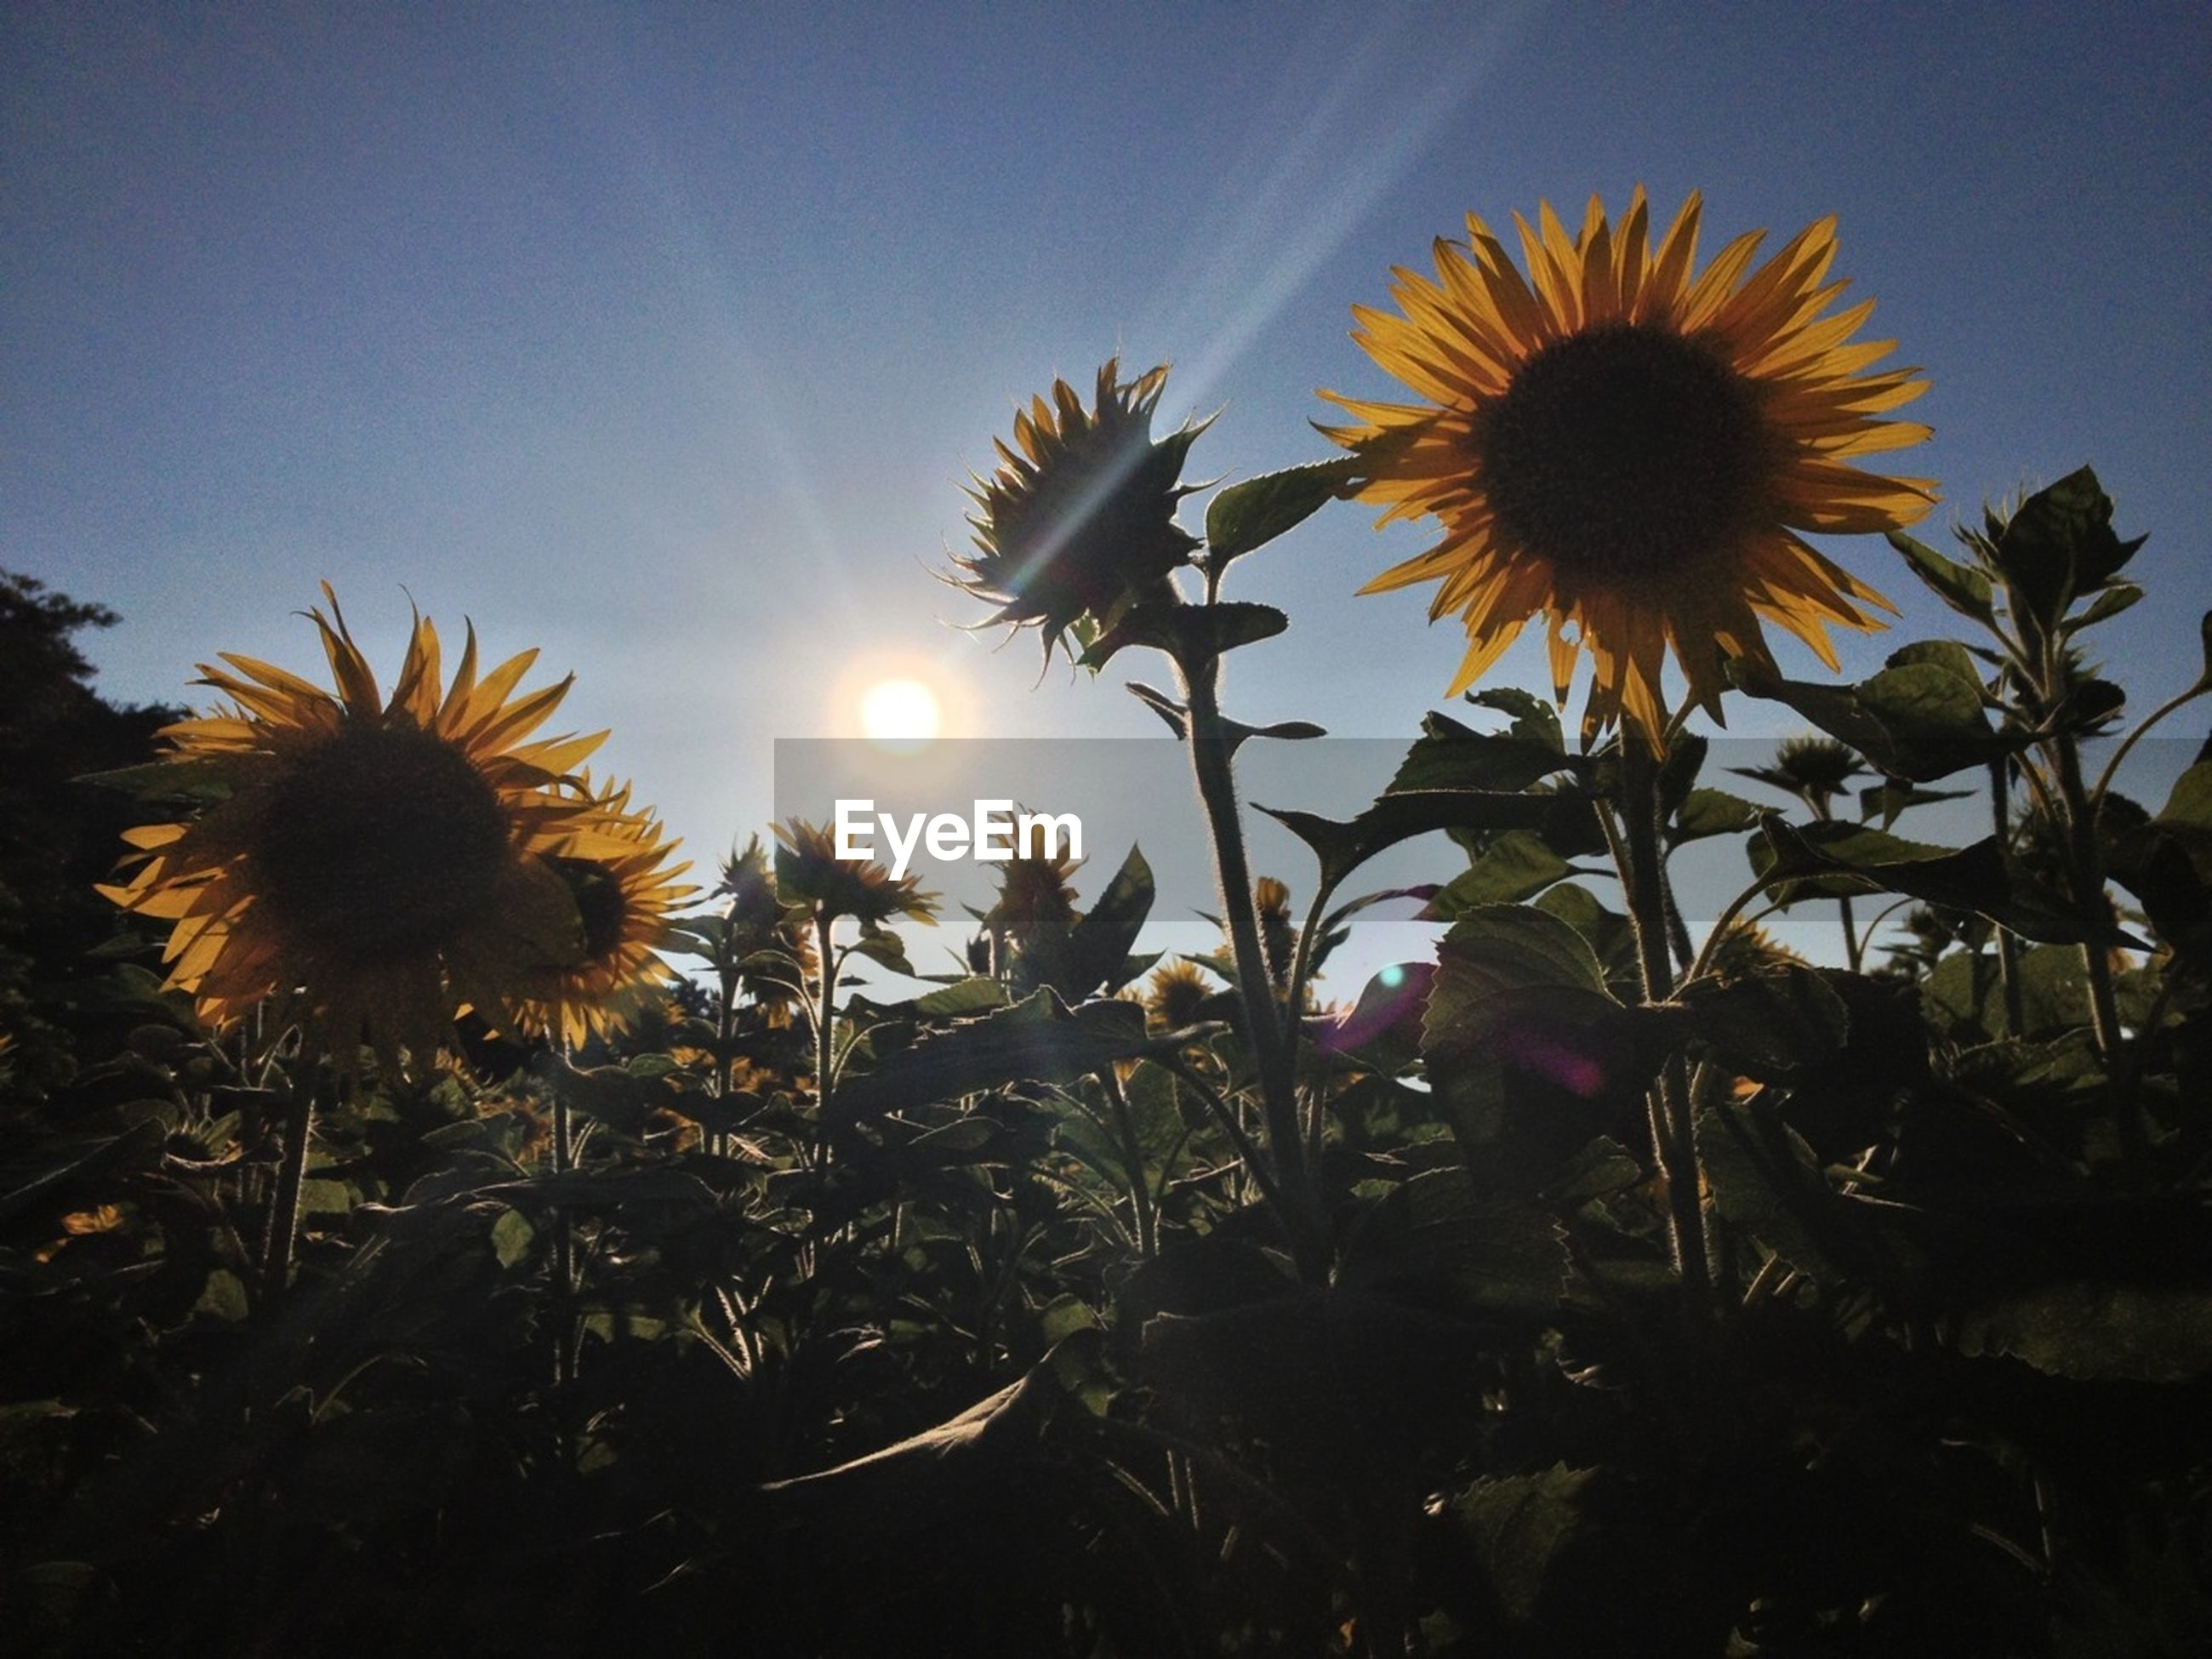 flower, growth, sun, beauty in nature, sunlight, freshness, plant, nature, clear sky, low angle view, fragility, sunflower, sunbeam, sky, flower head, yellow, field, lens flare, blooming, close-up